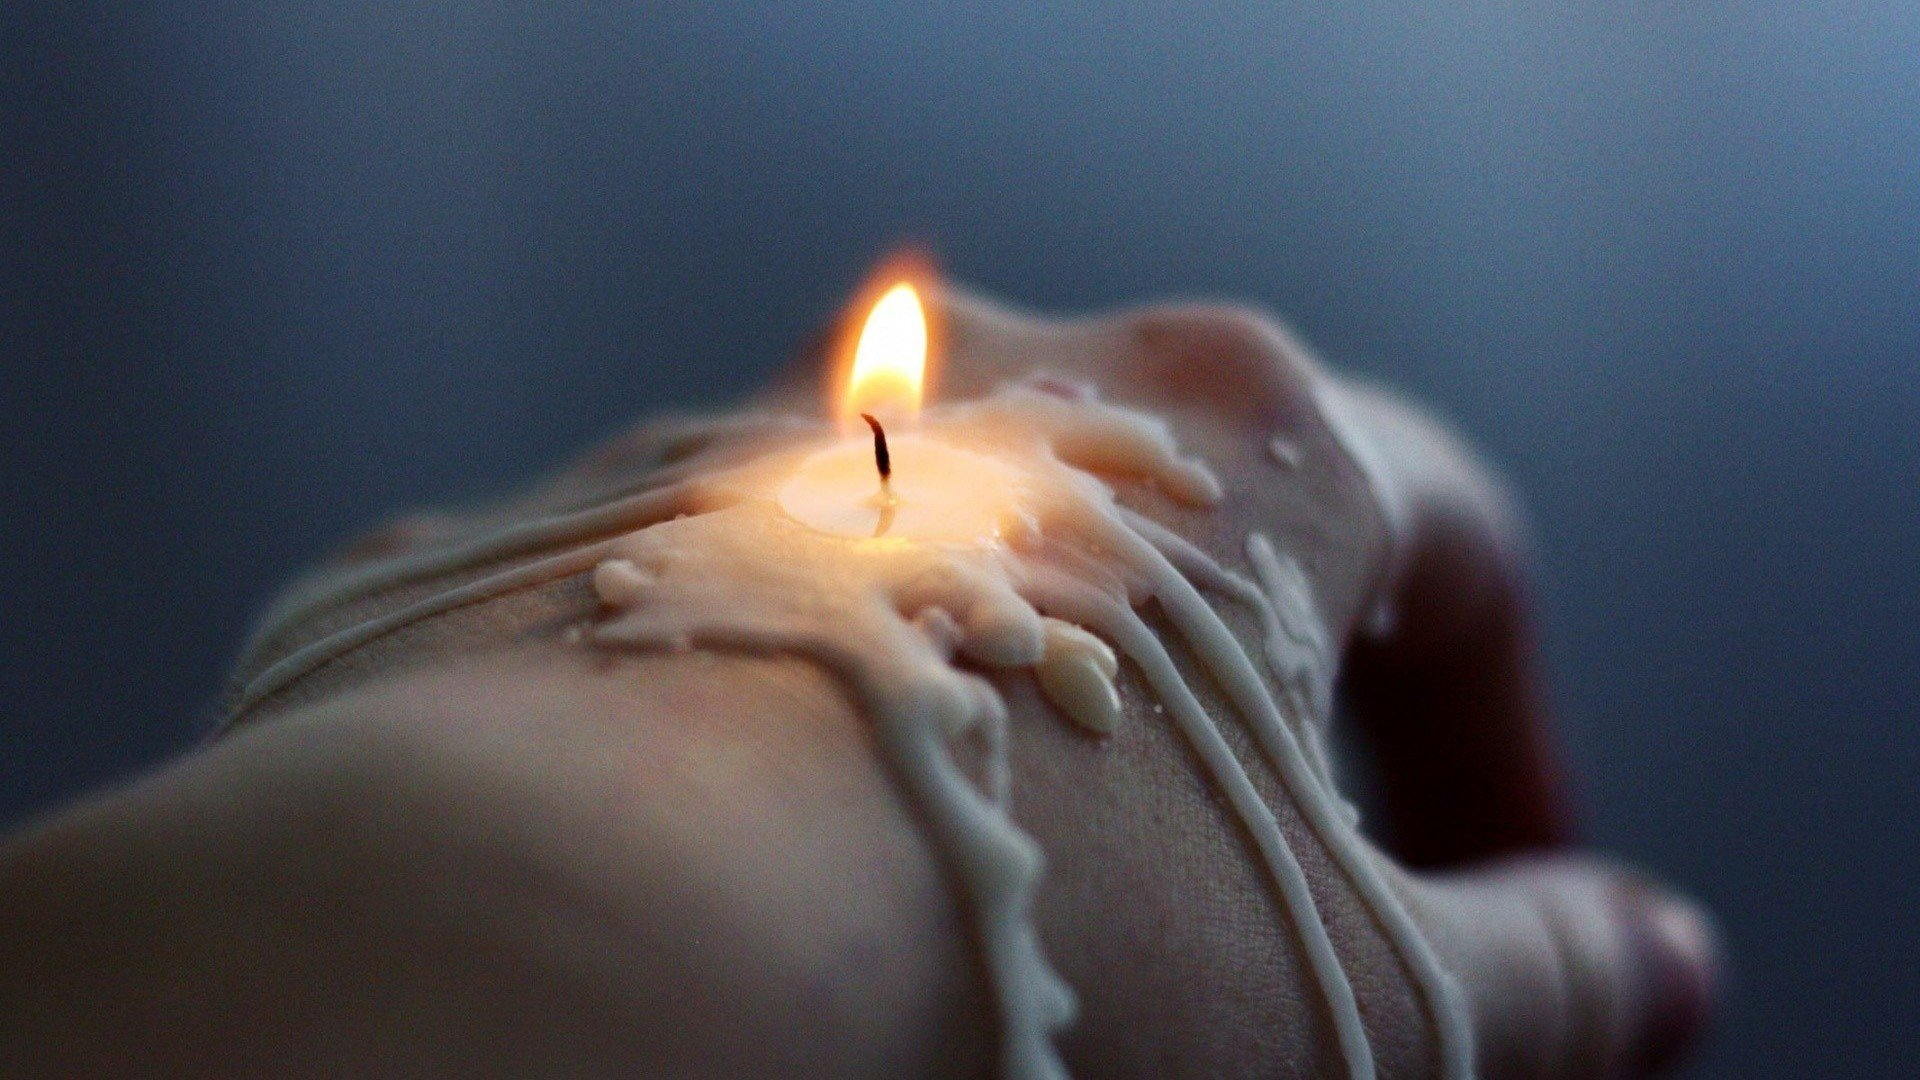 Candle Art Hd Wallpaper: Hand, Candles, Fire, Wax HD Wallpapers / Desktop And